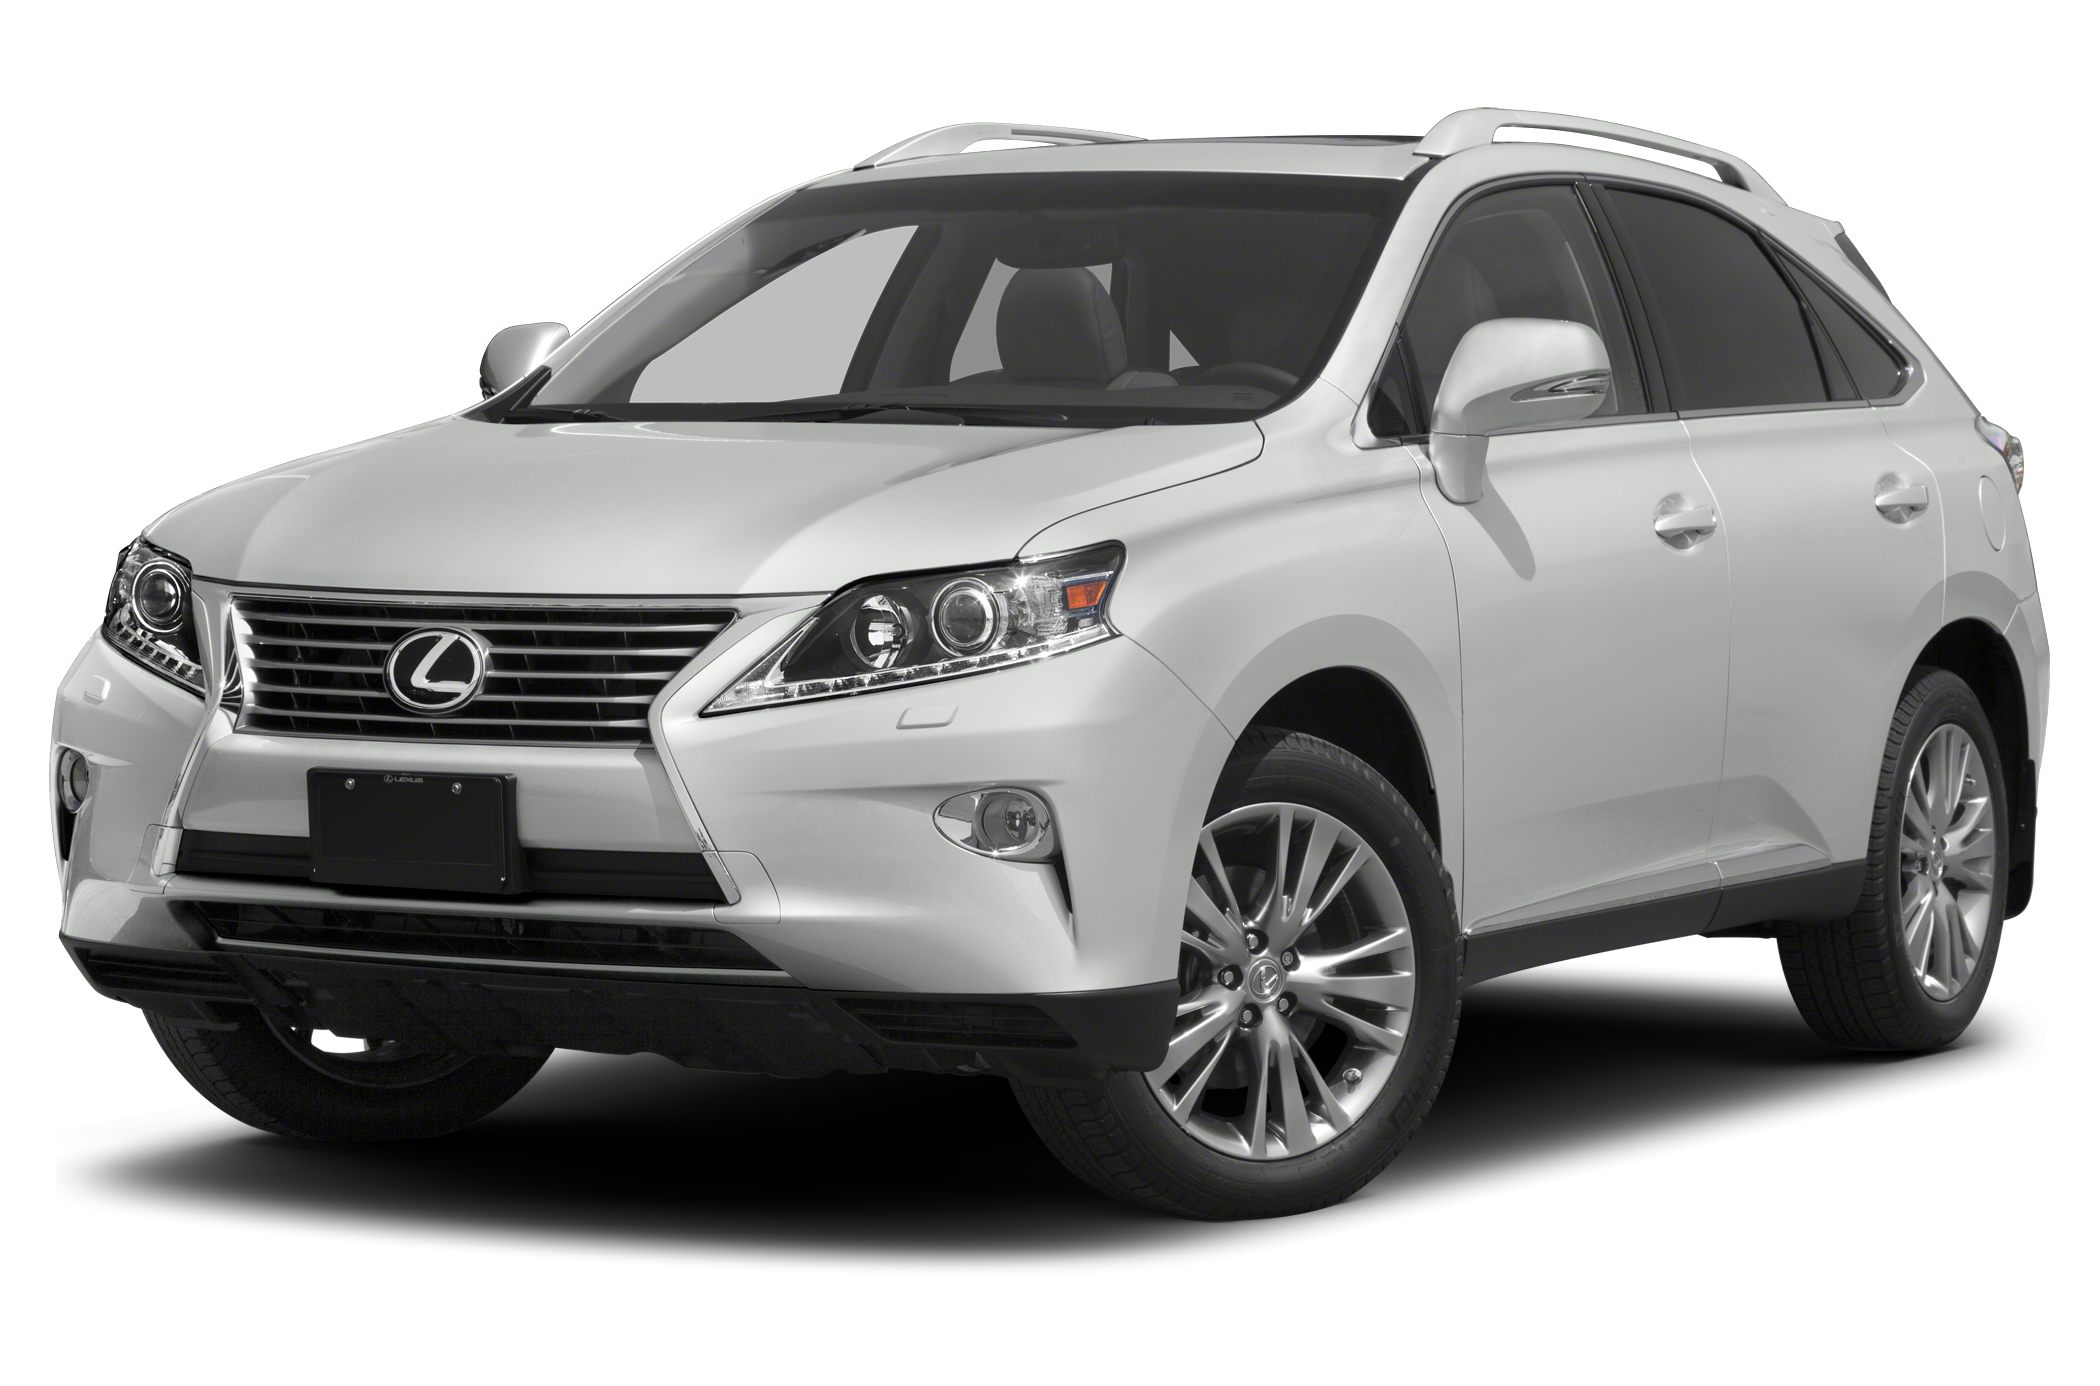 2013 Lexus RX 350 New Car Test Drive